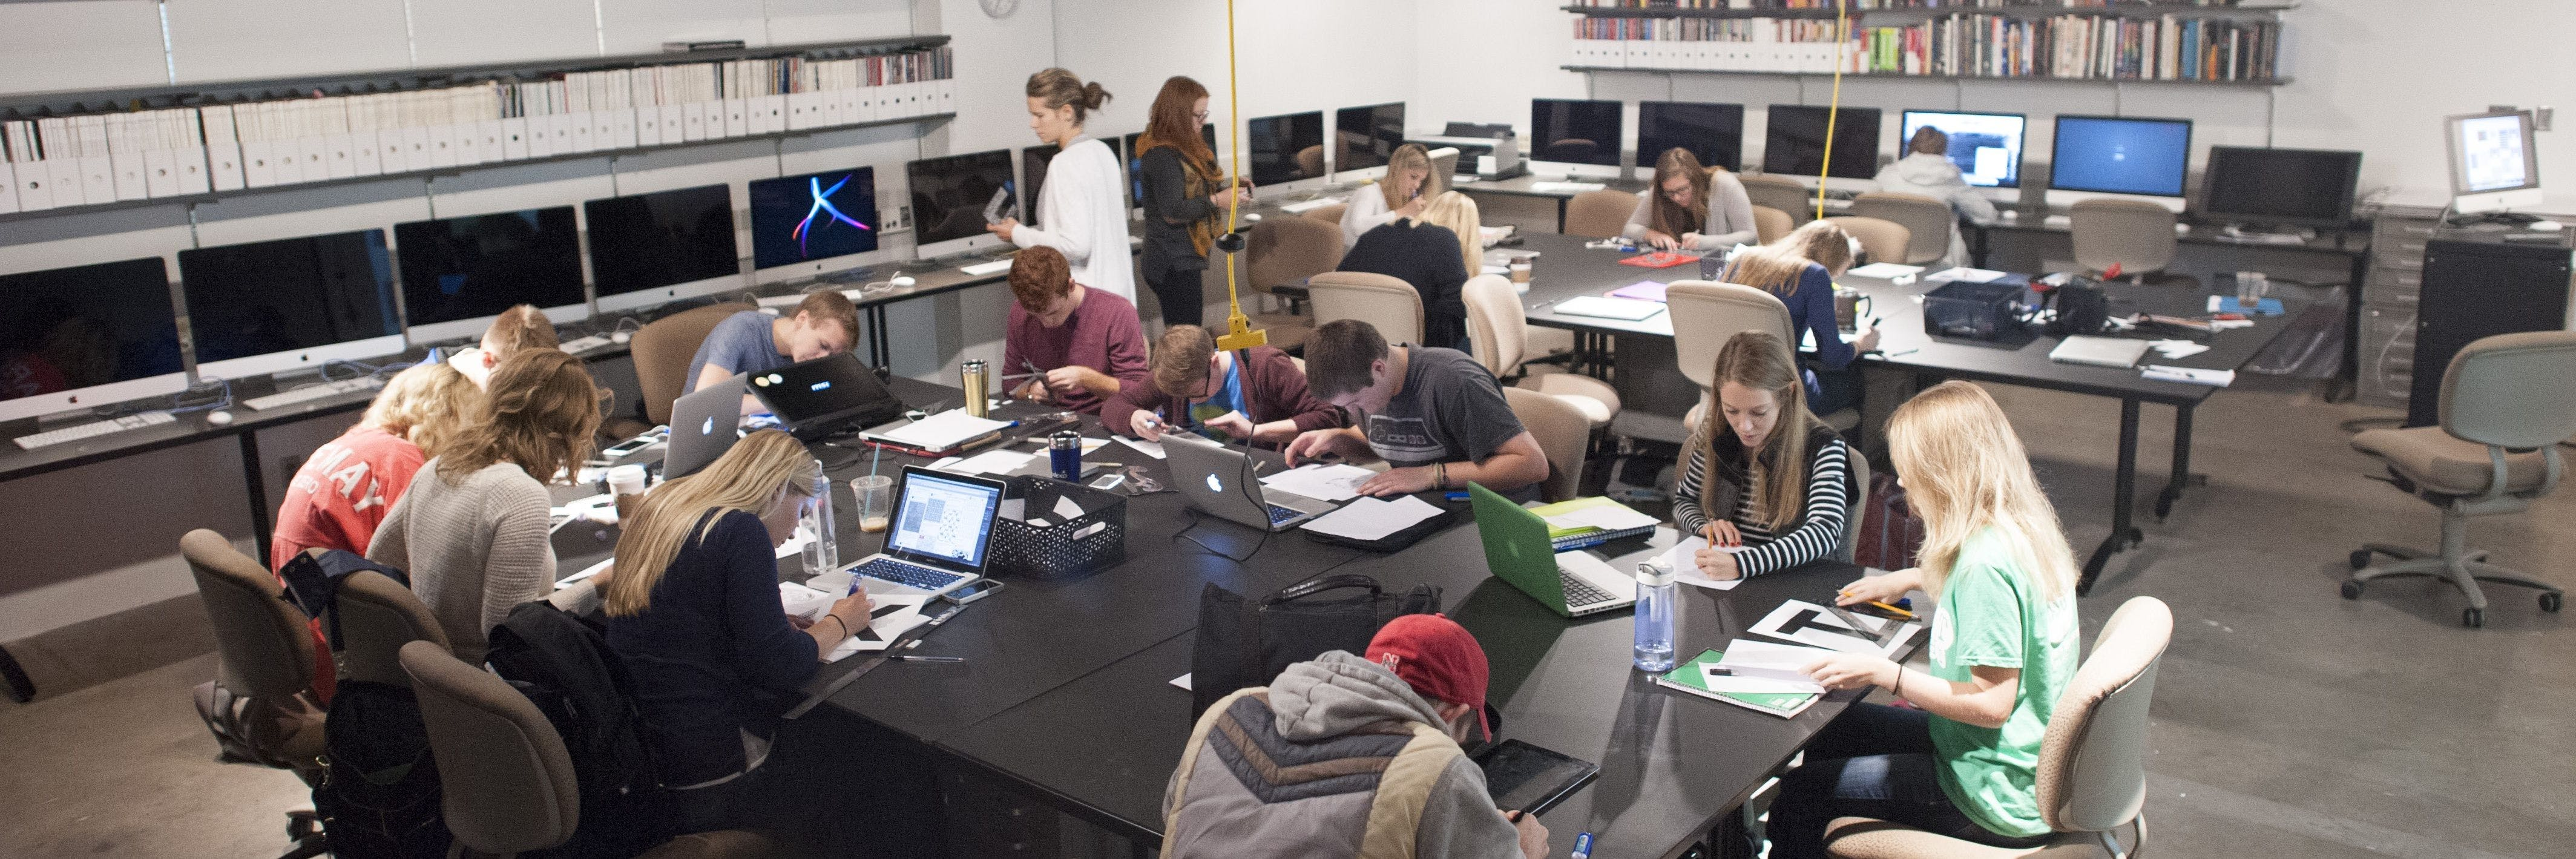 Students work in a design studio.